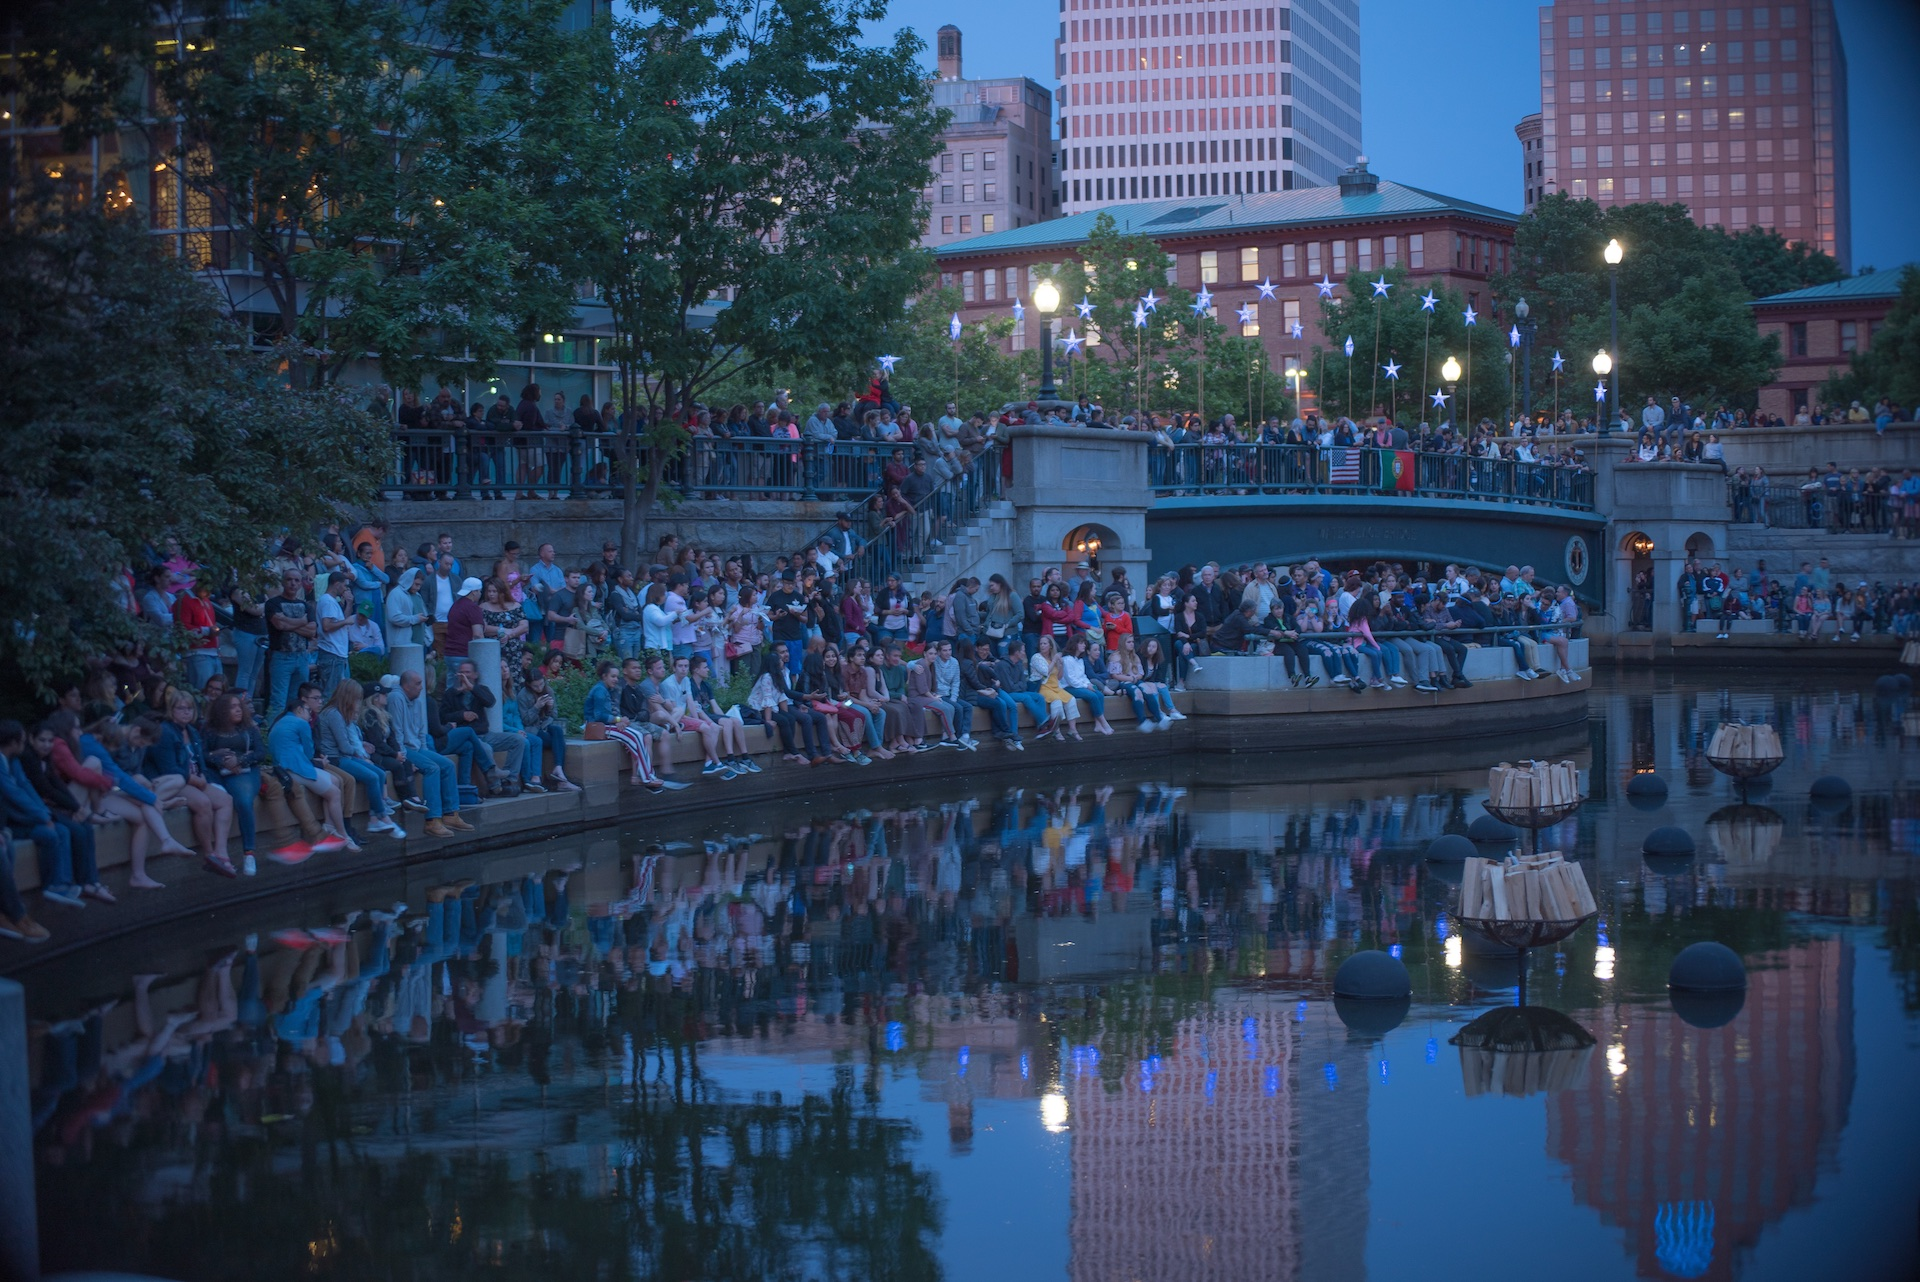 providence-and-its-visitors-reflect-in-the-basin-before-waterfire-is-lit_40984417590_o